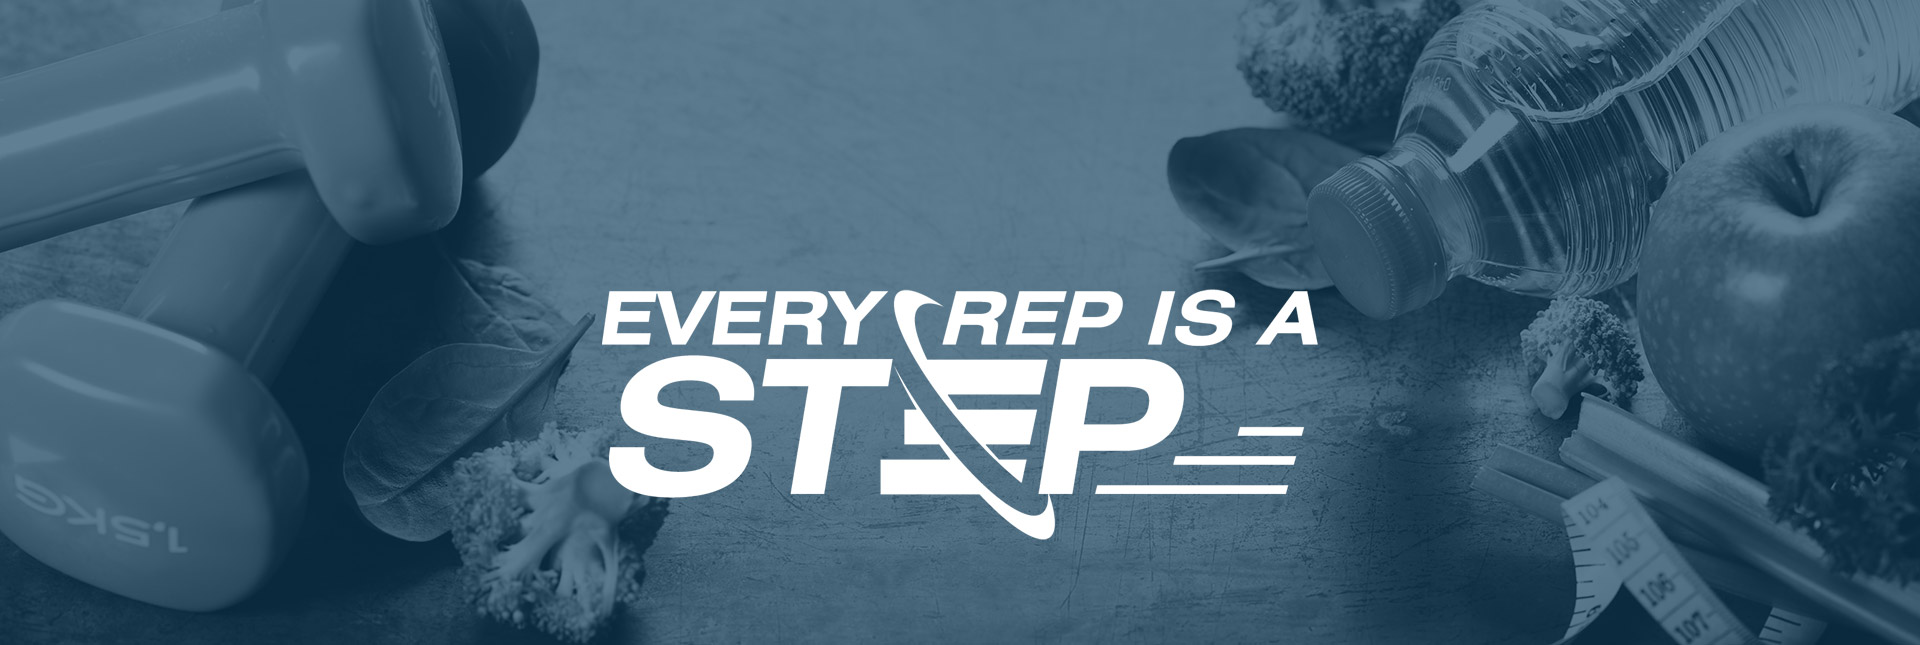 Every Rep is a Step